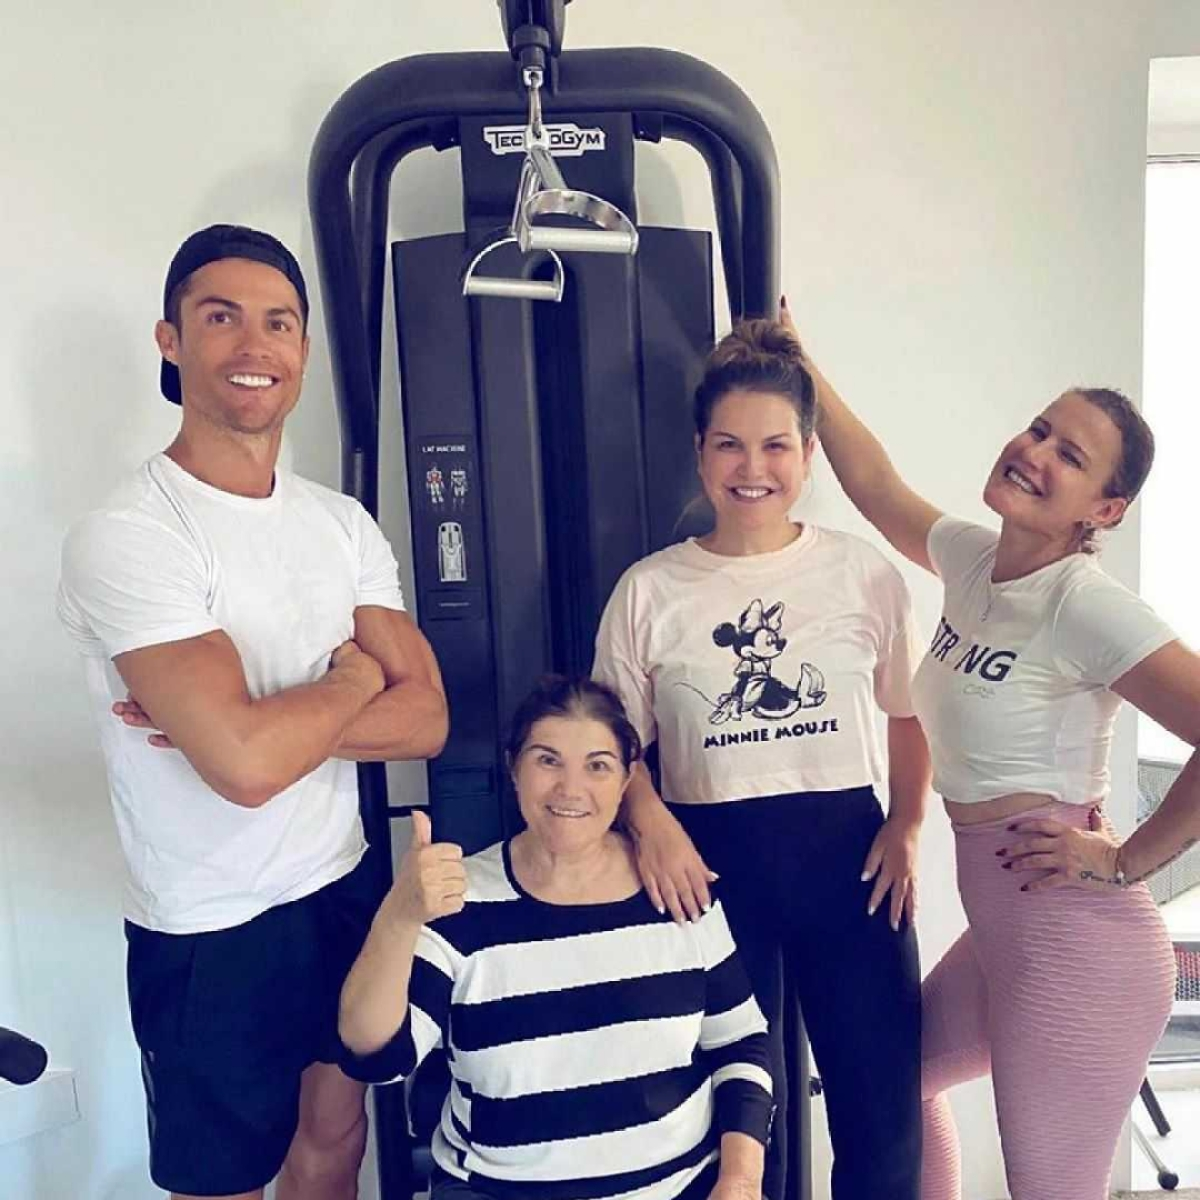 'Look after your loved ones': Cristiano Ronaldo shares family picture amid mother's recovery from stroke